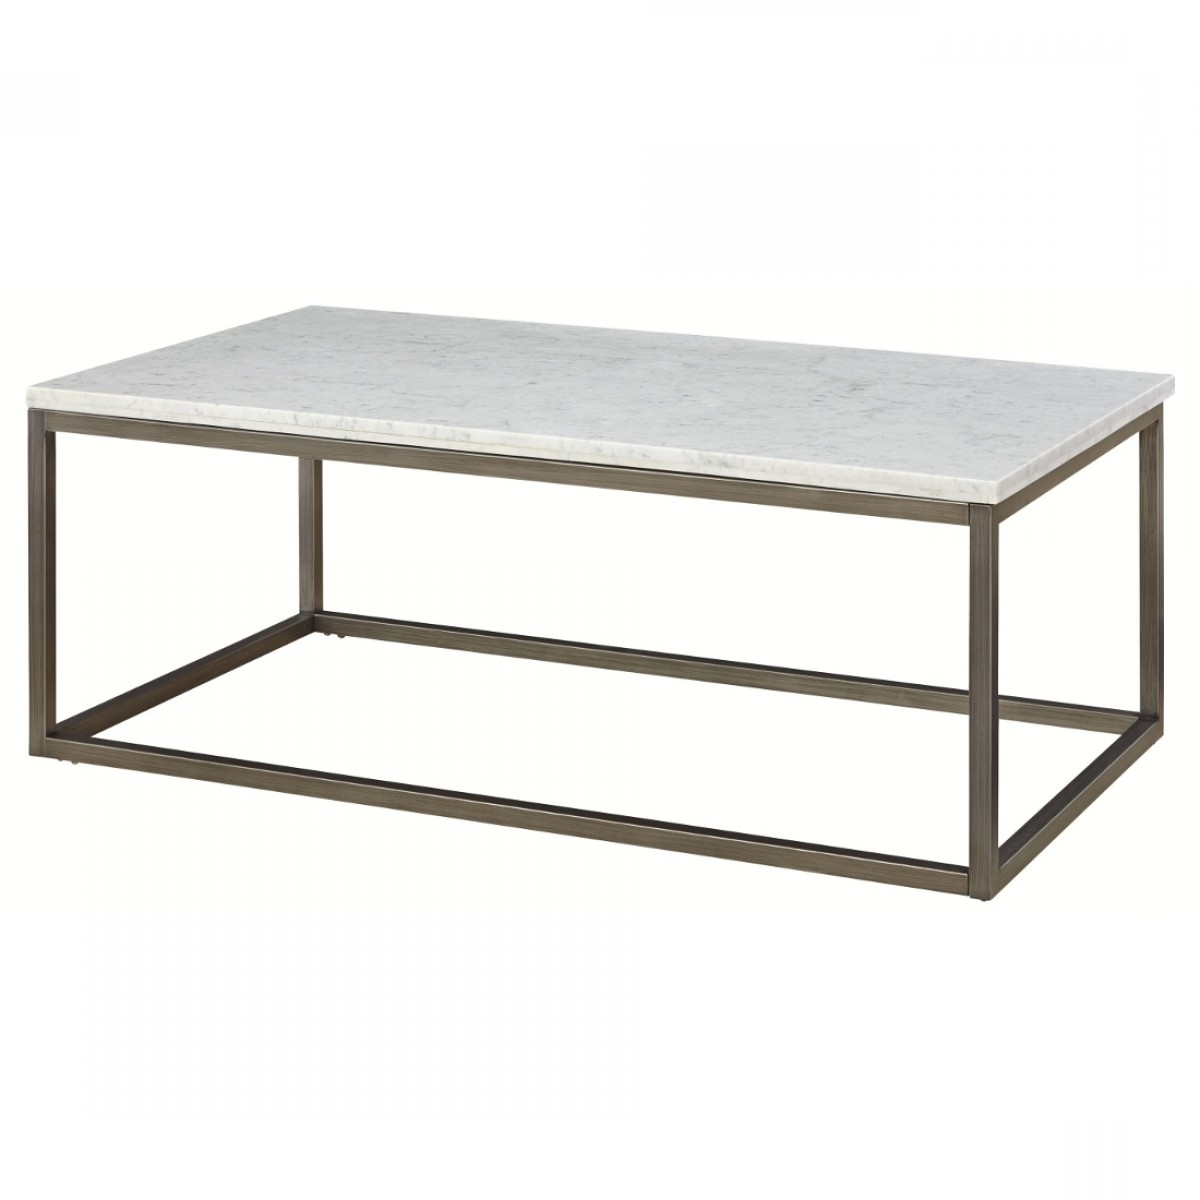 Well Known Intertwine Triangle Marble Coffee Tables Inside Alana Coffee Table Round White Marble Top – Coffee Table Ideas (View 19 of 20)